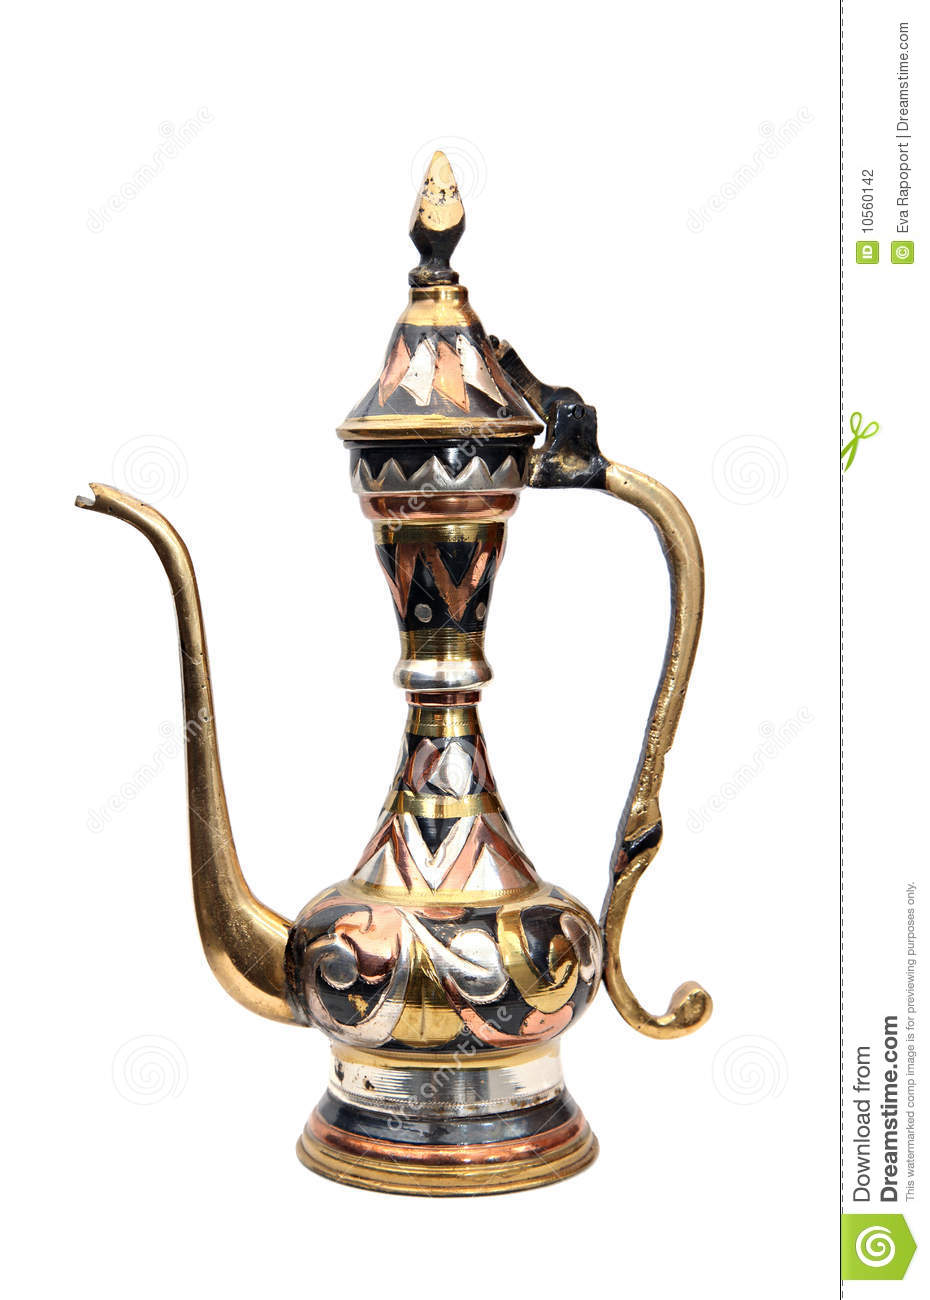 Arabic jar o coffee pot decorated with ornaments.